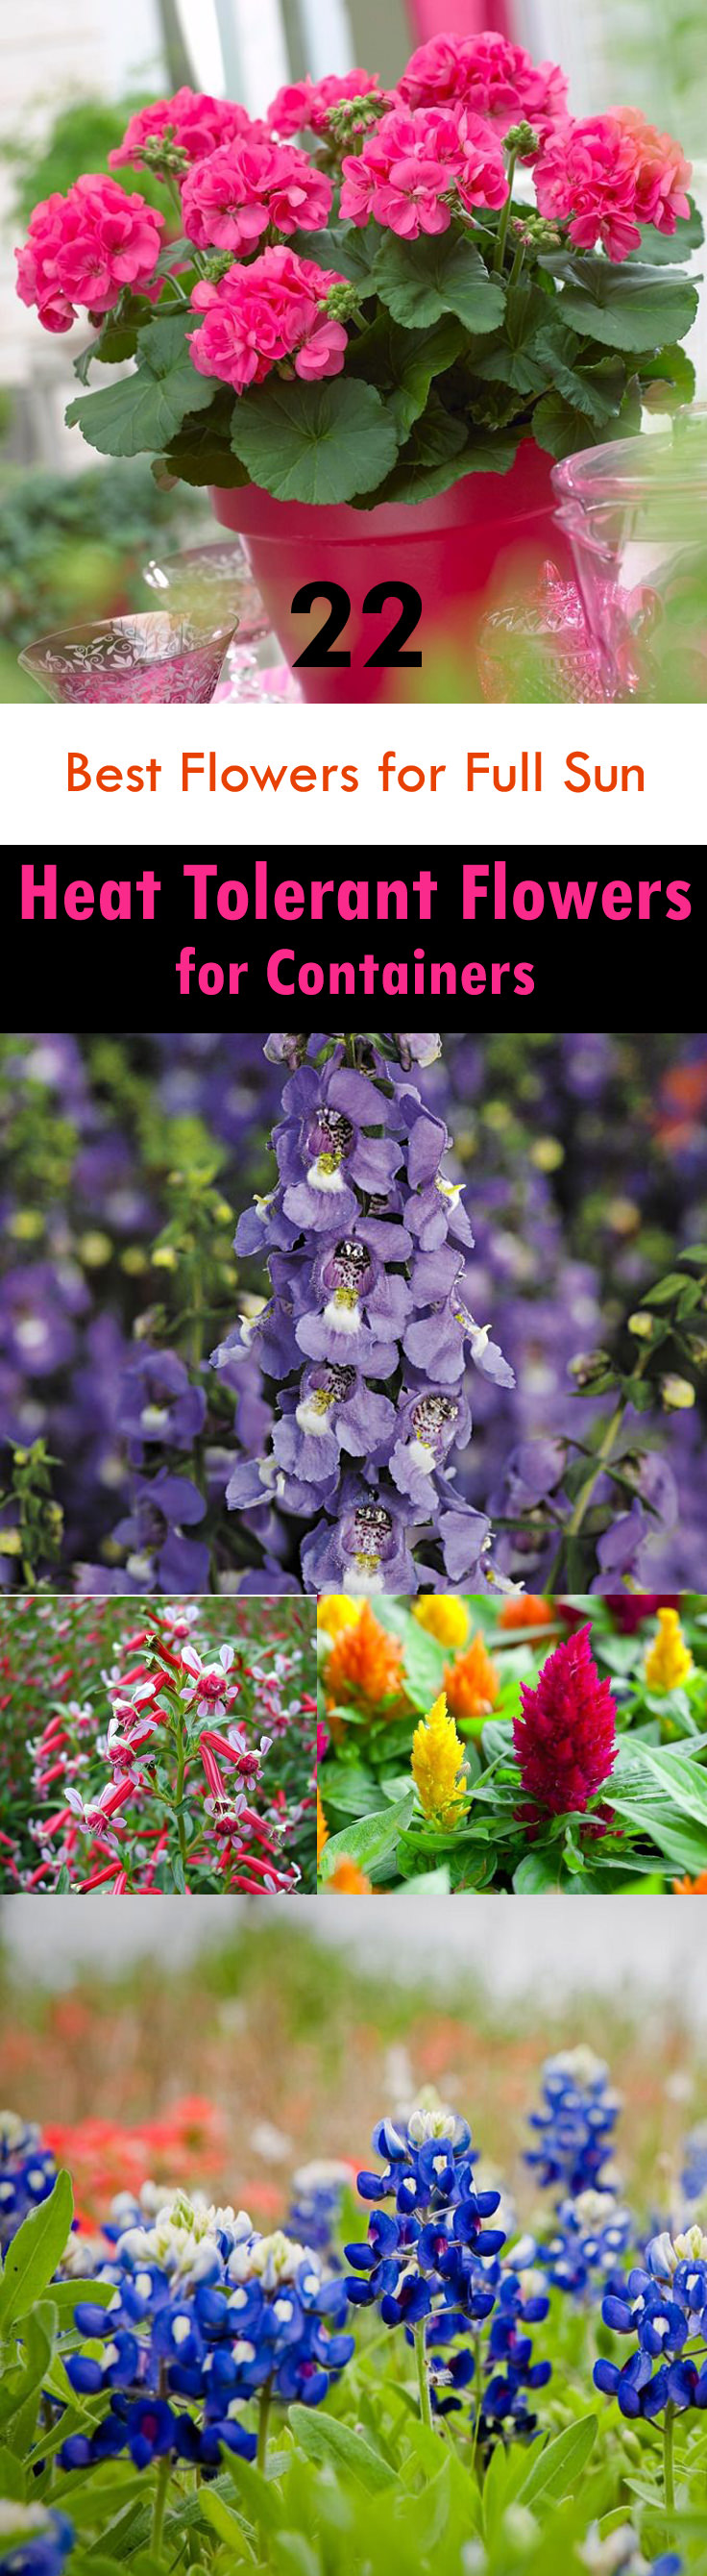 If youre searching for the best flowers for full sun then see our list of heat tolerant flowers.